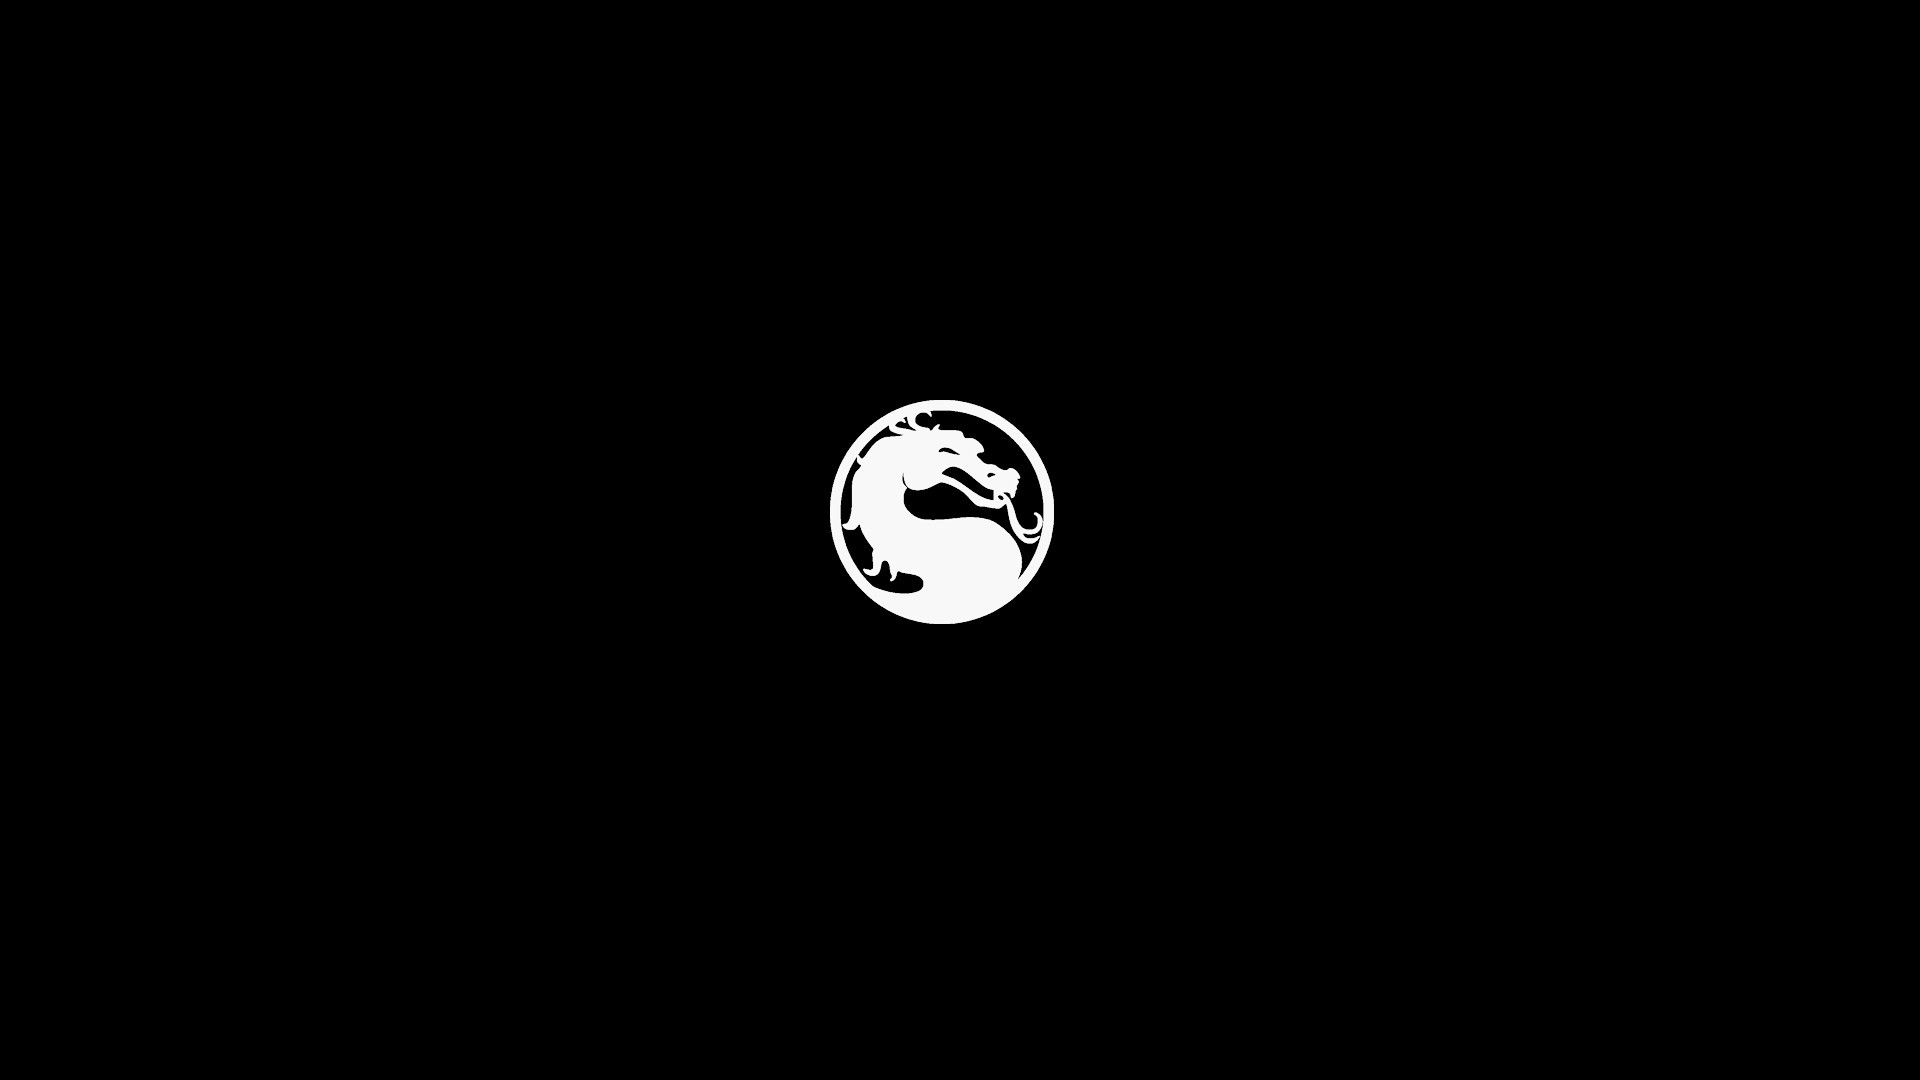 1920x1080 Mortal Kombat HD Wallpaper | Hintergrund |  | ID:970366 - Wallpaper  Abyss